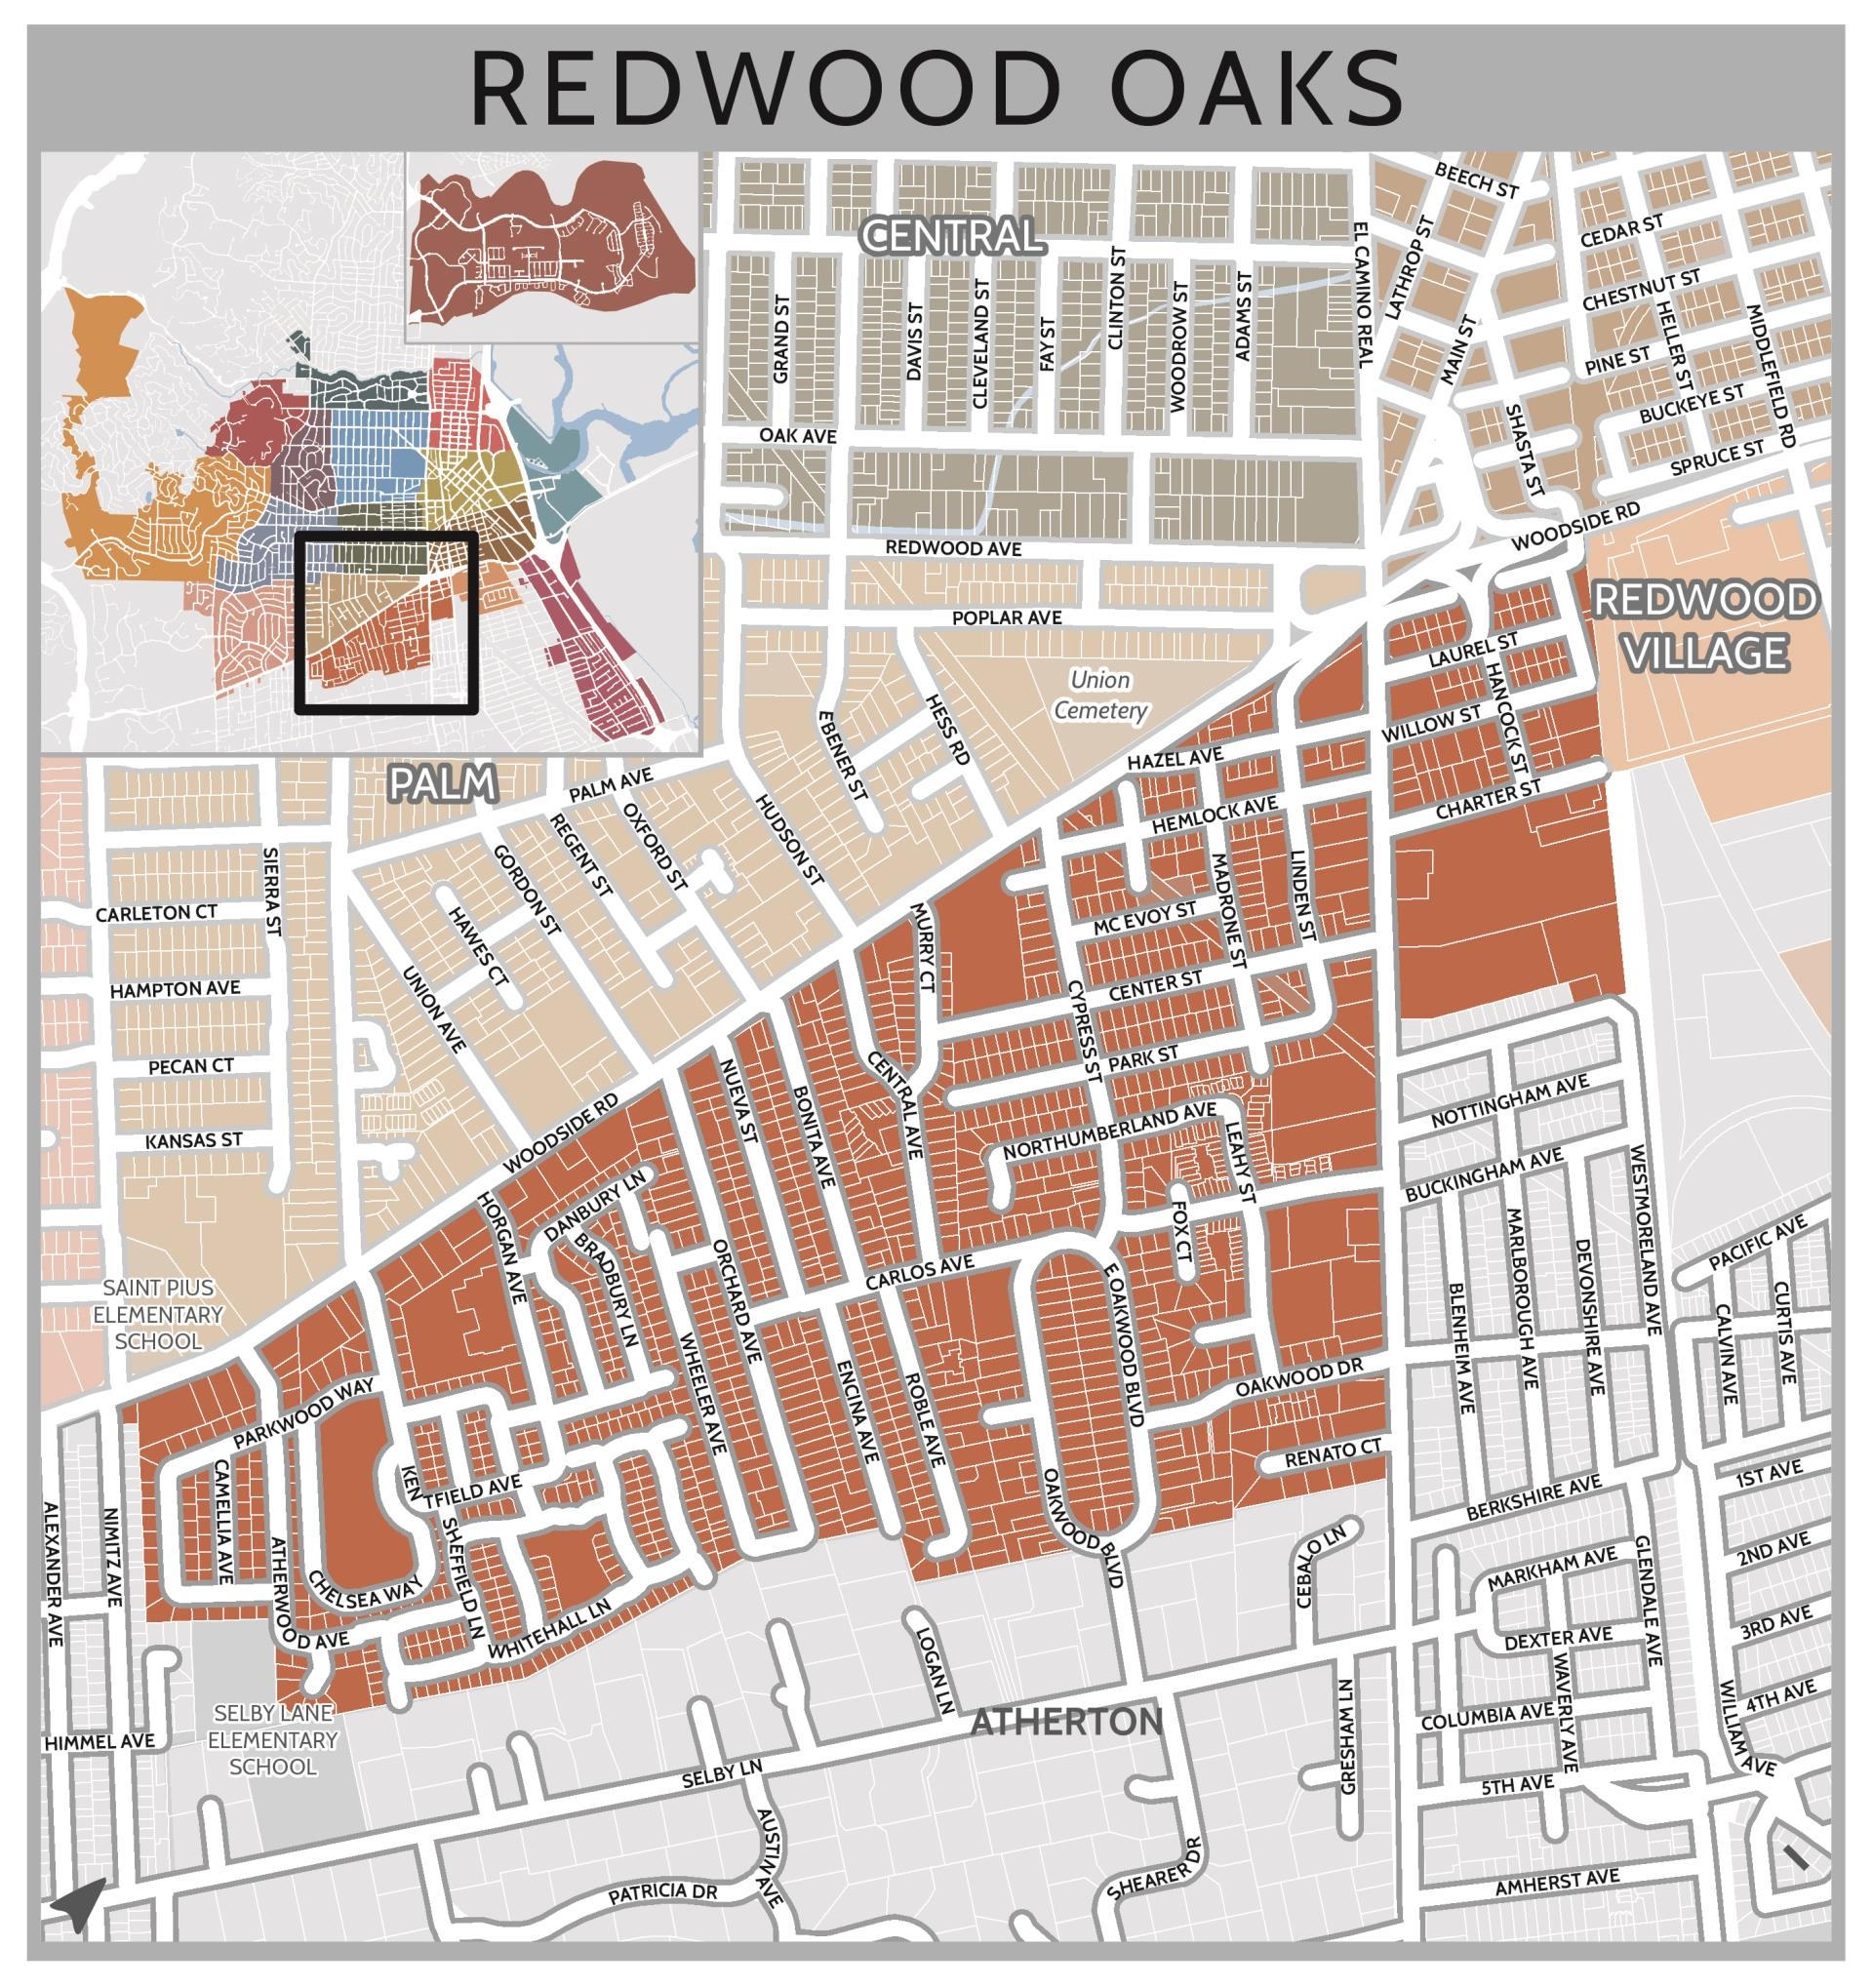 Redwood_Oaks-01